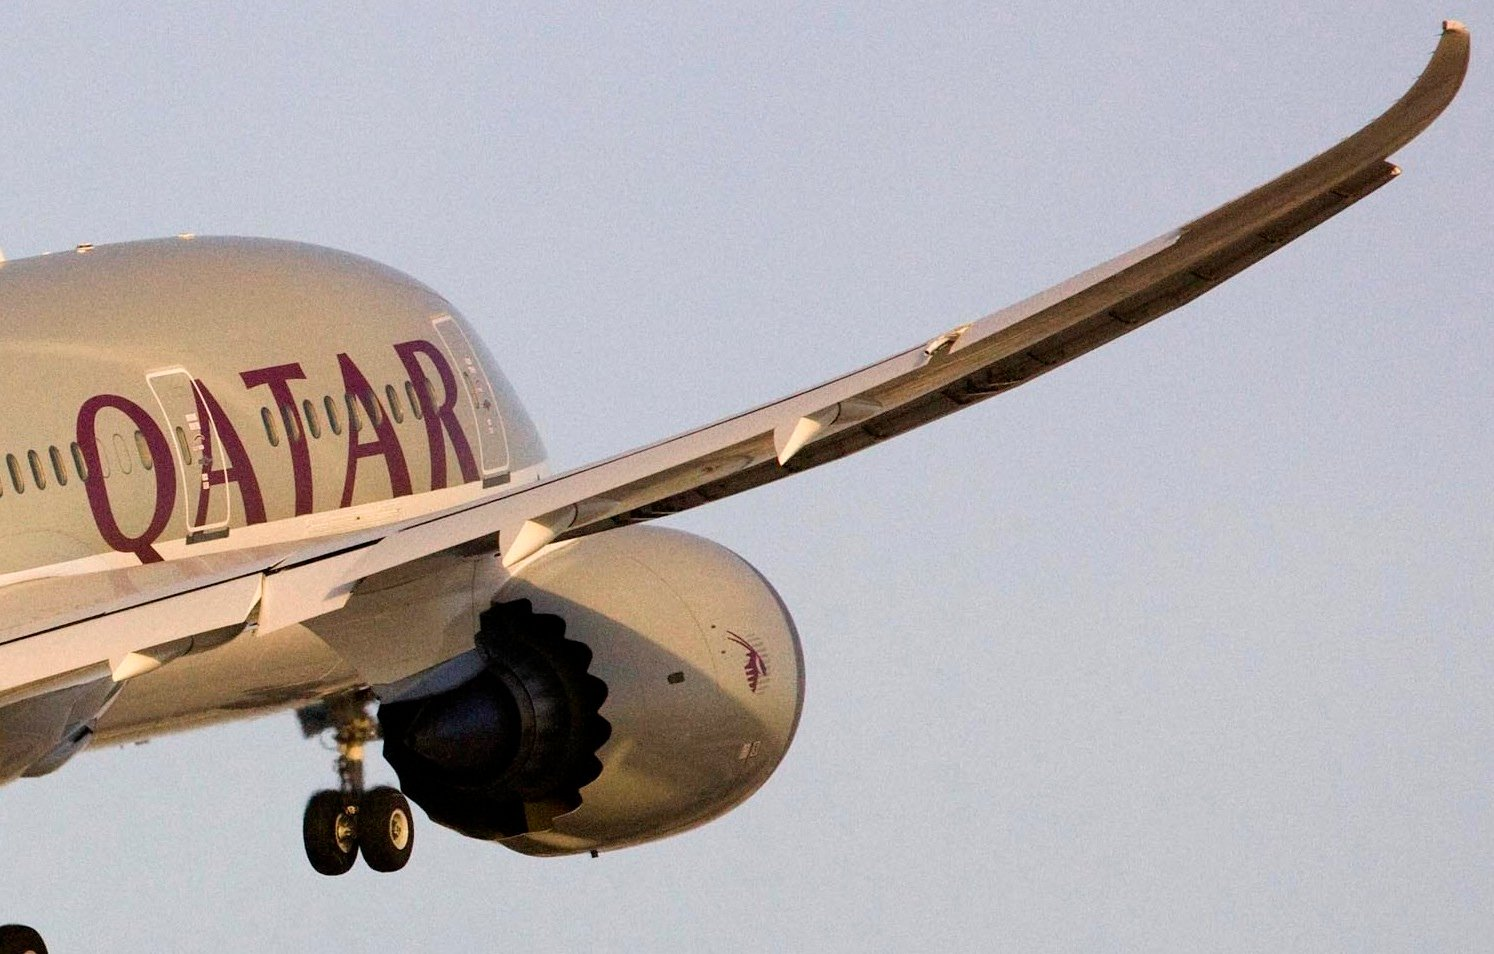 Qatar Airways Targets May 15 Dreamliner Return